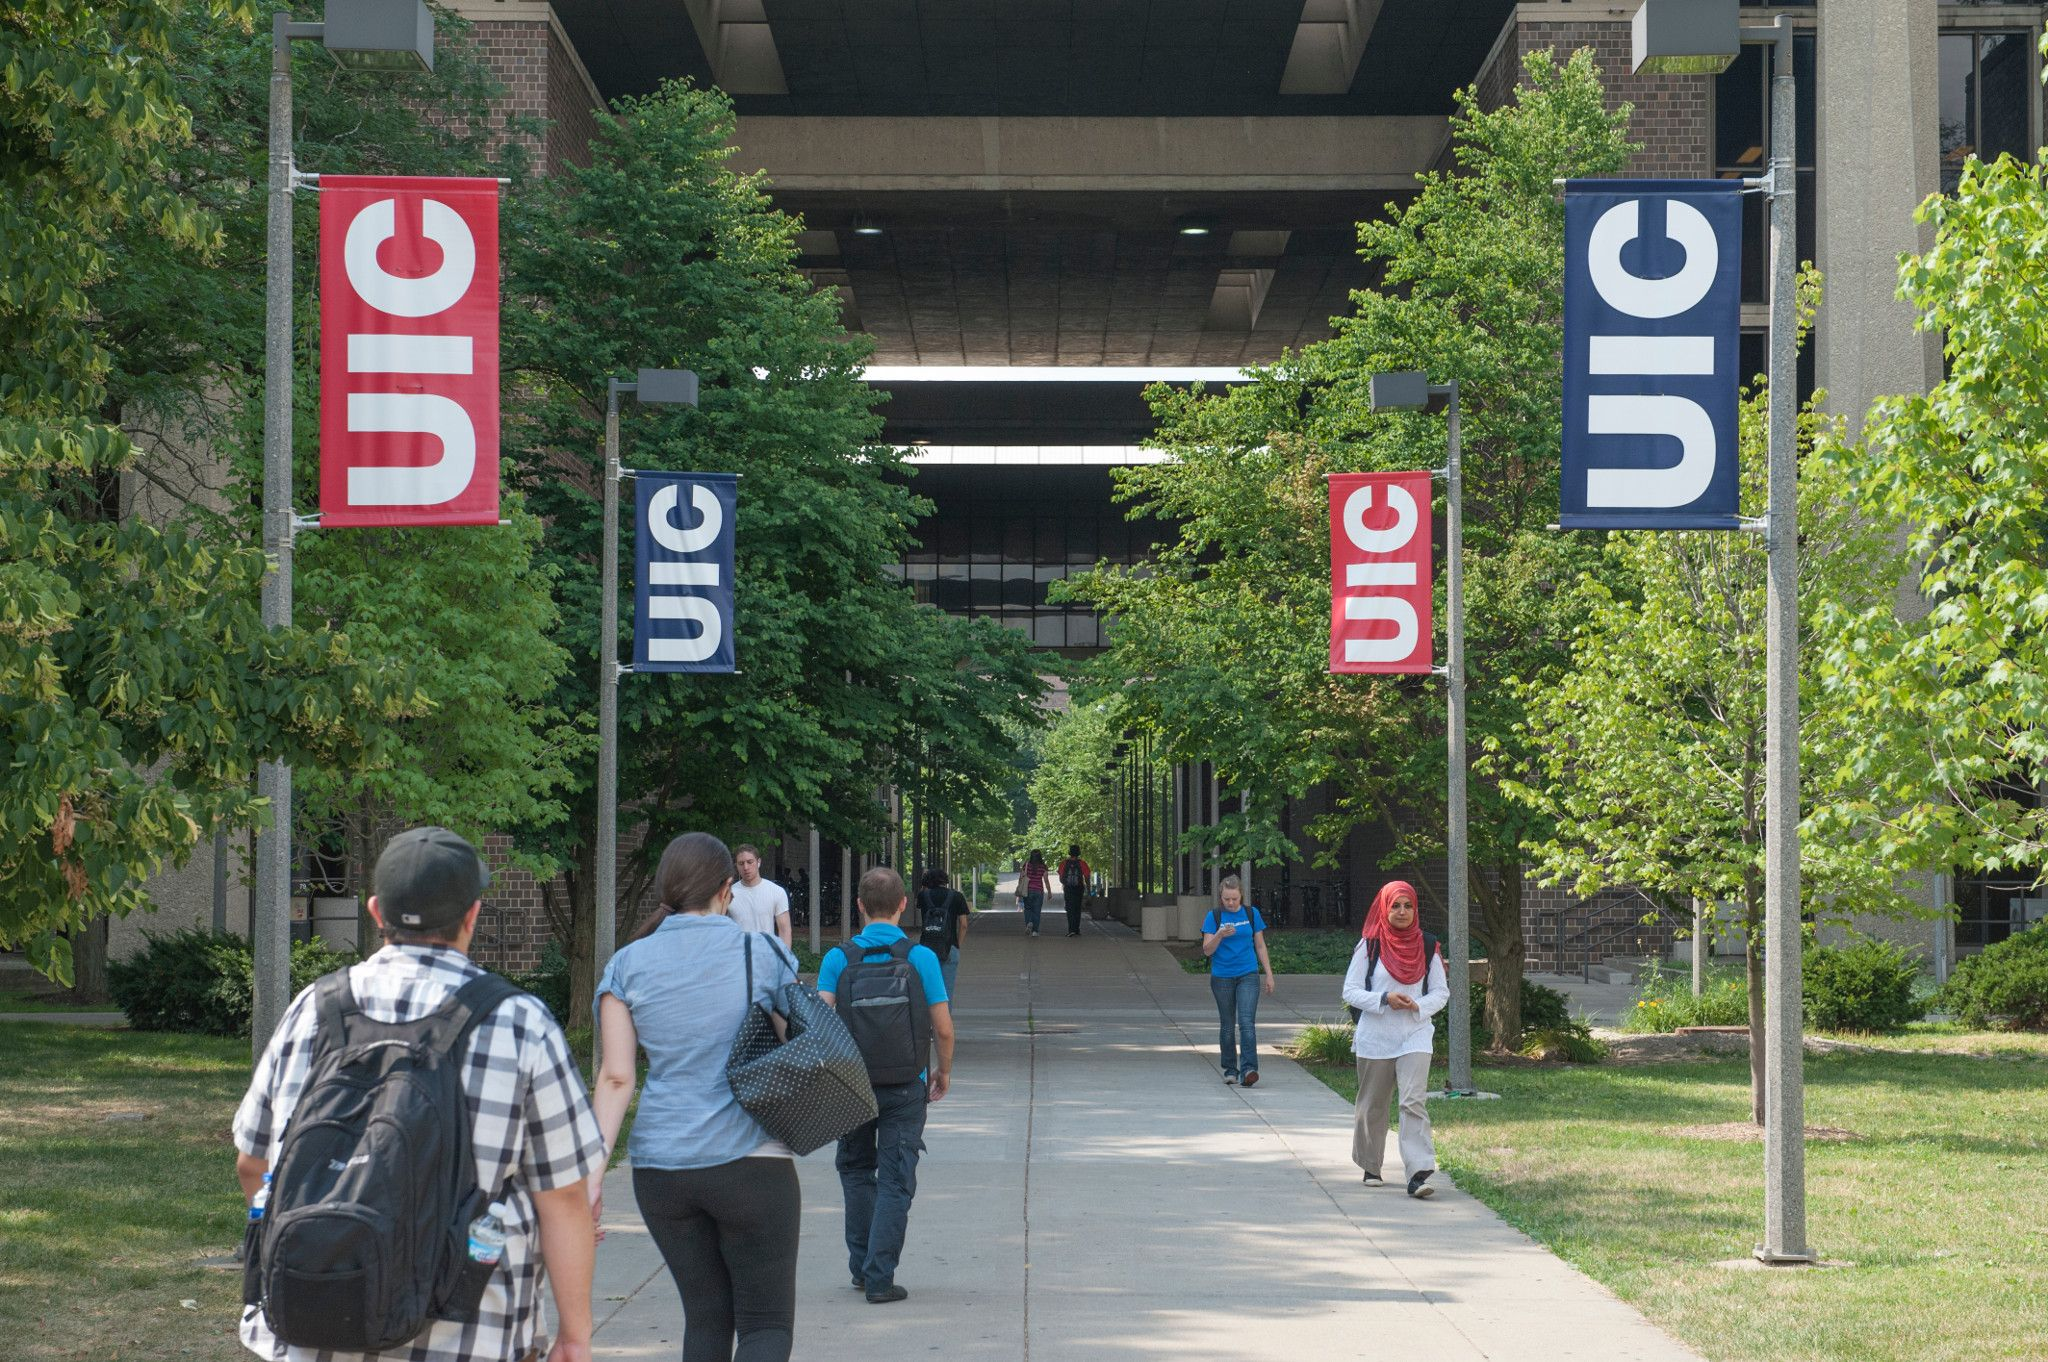 UIC University buildings